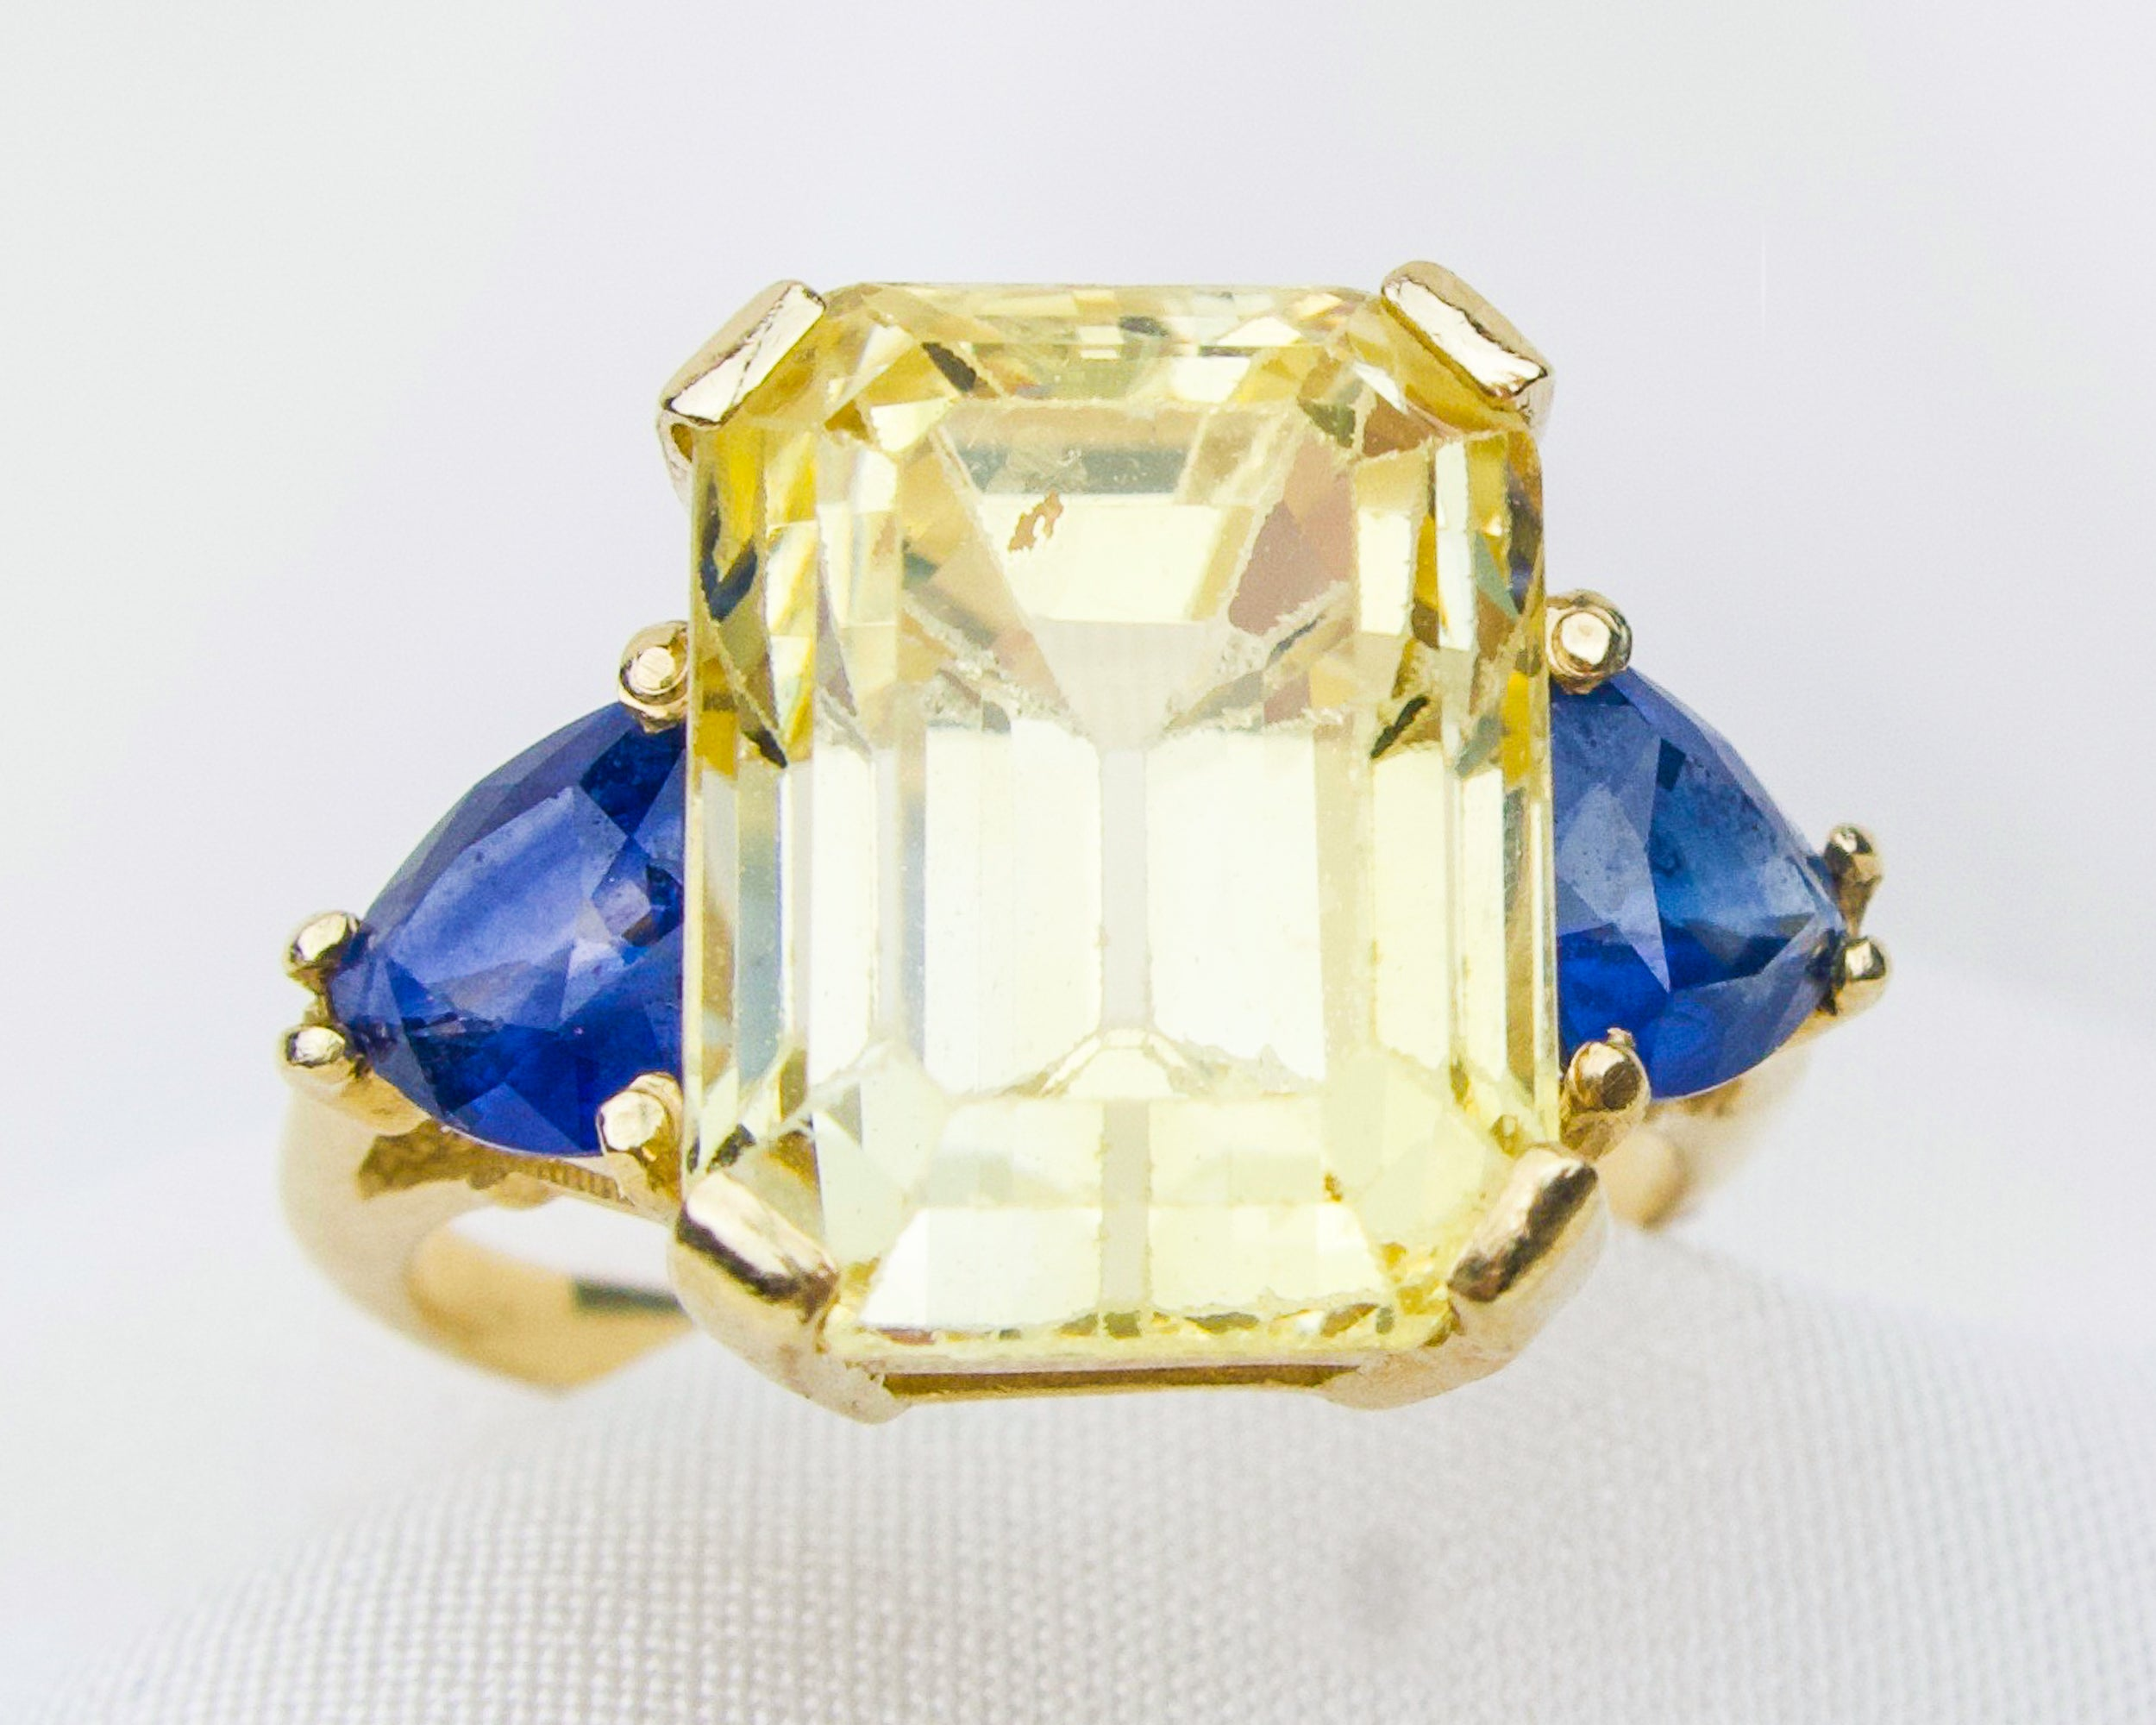 Late-Midcentury Yellow and Blue Sapphire Ring